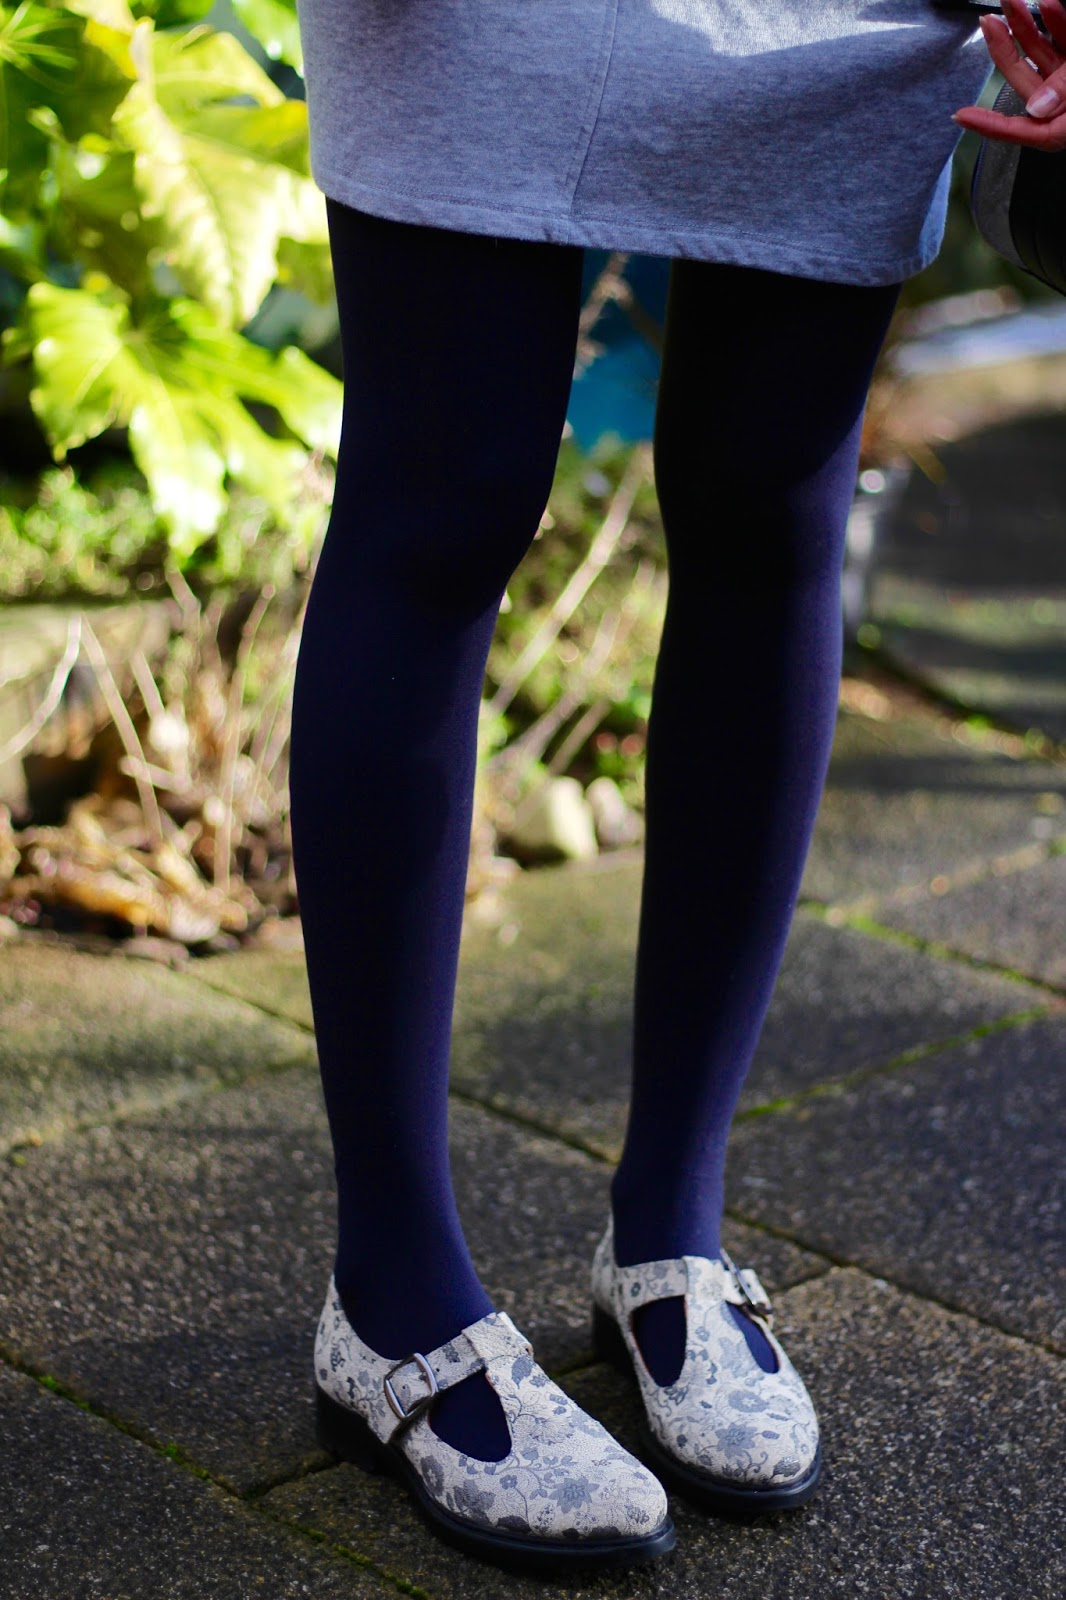 Fake Fabulous | Geek shoes and blue tights.